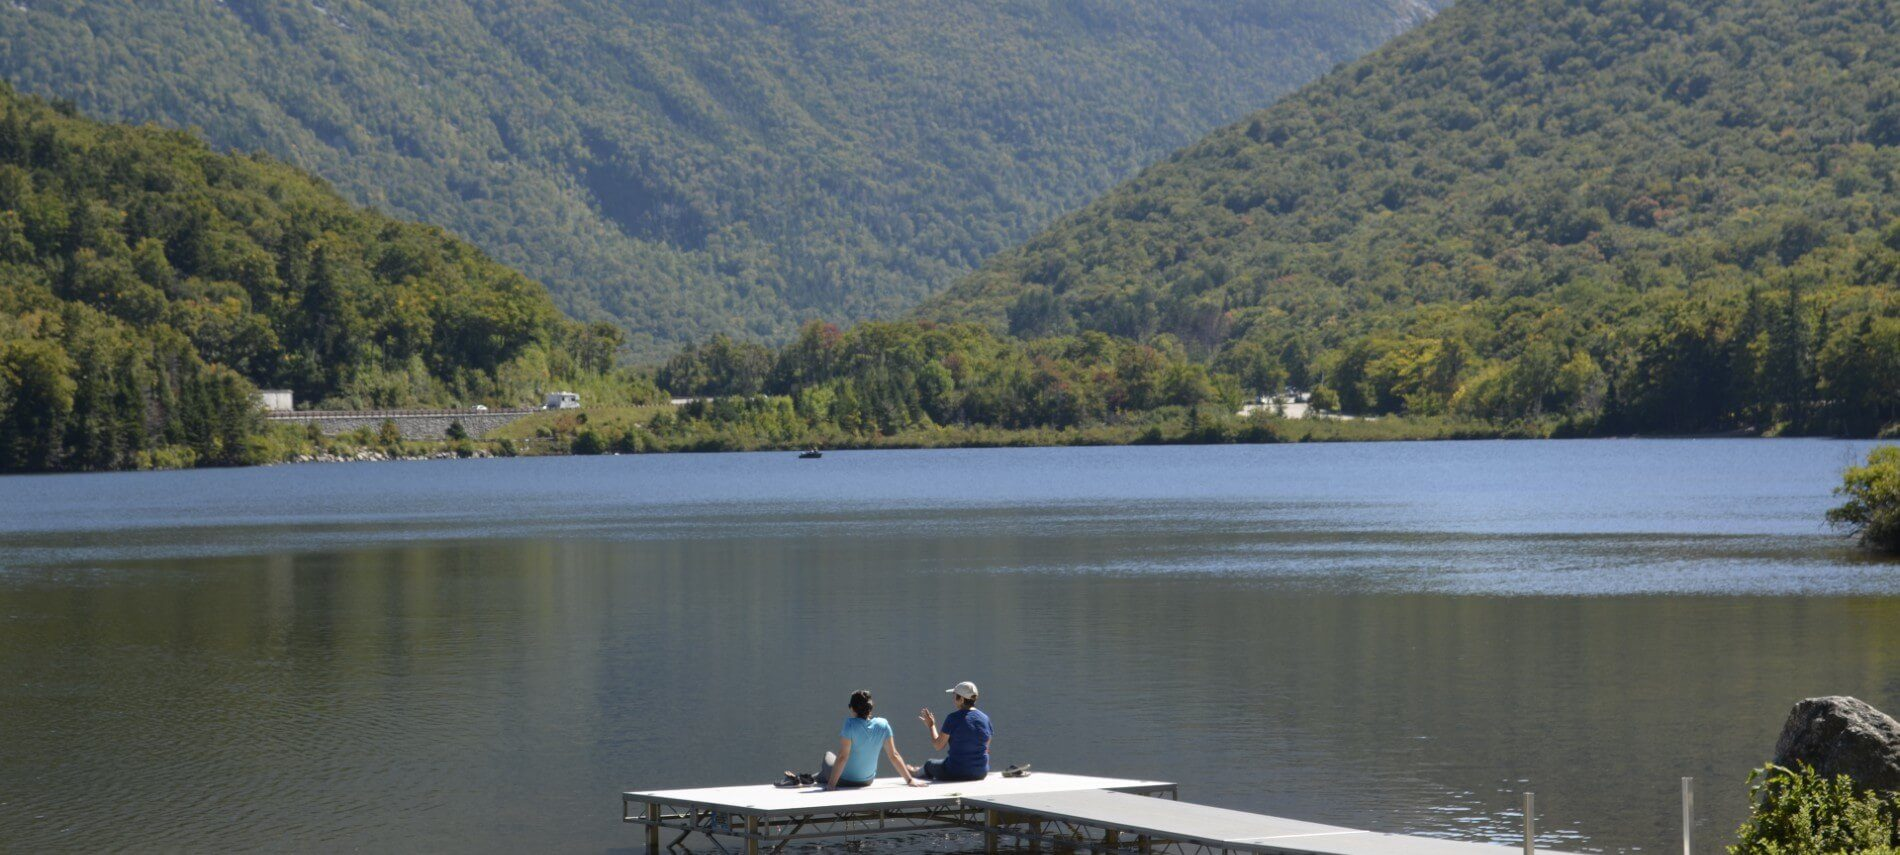 Two people sitting at the edge of a dock in front of a large lake at the bottom of a mountain range